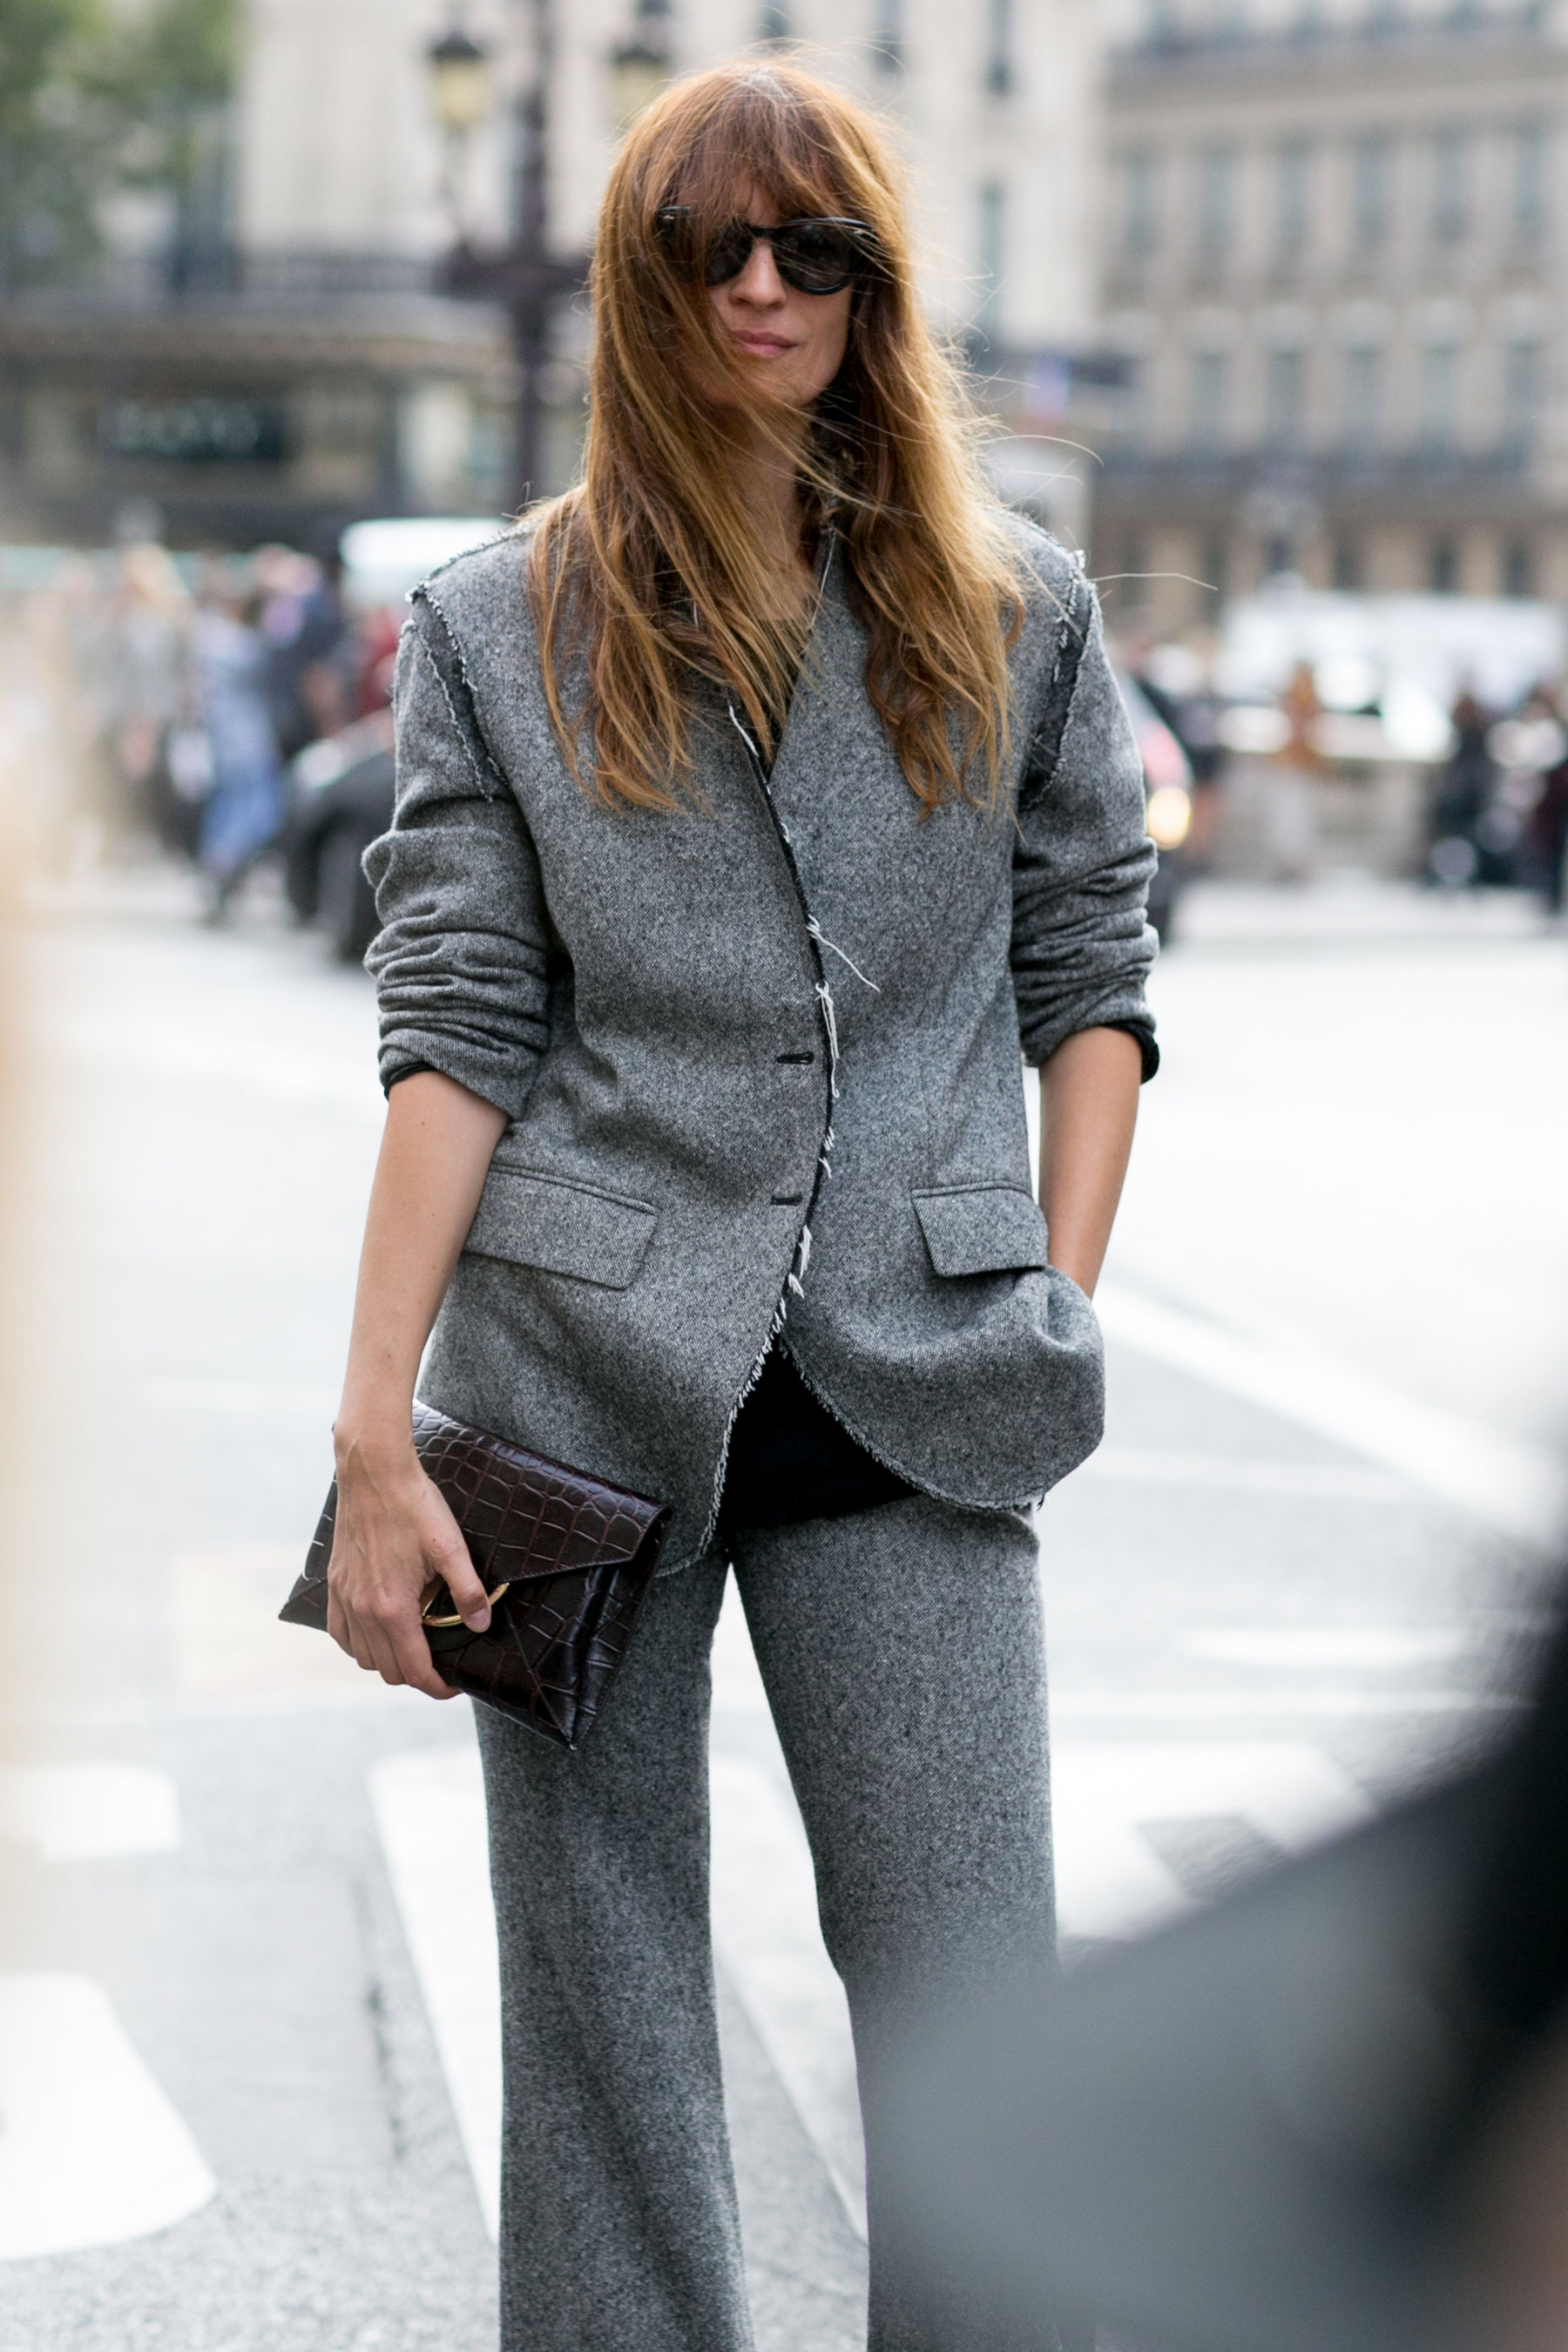 Paris-fashion-week-street-style-day-7-october-15-the-impression-48